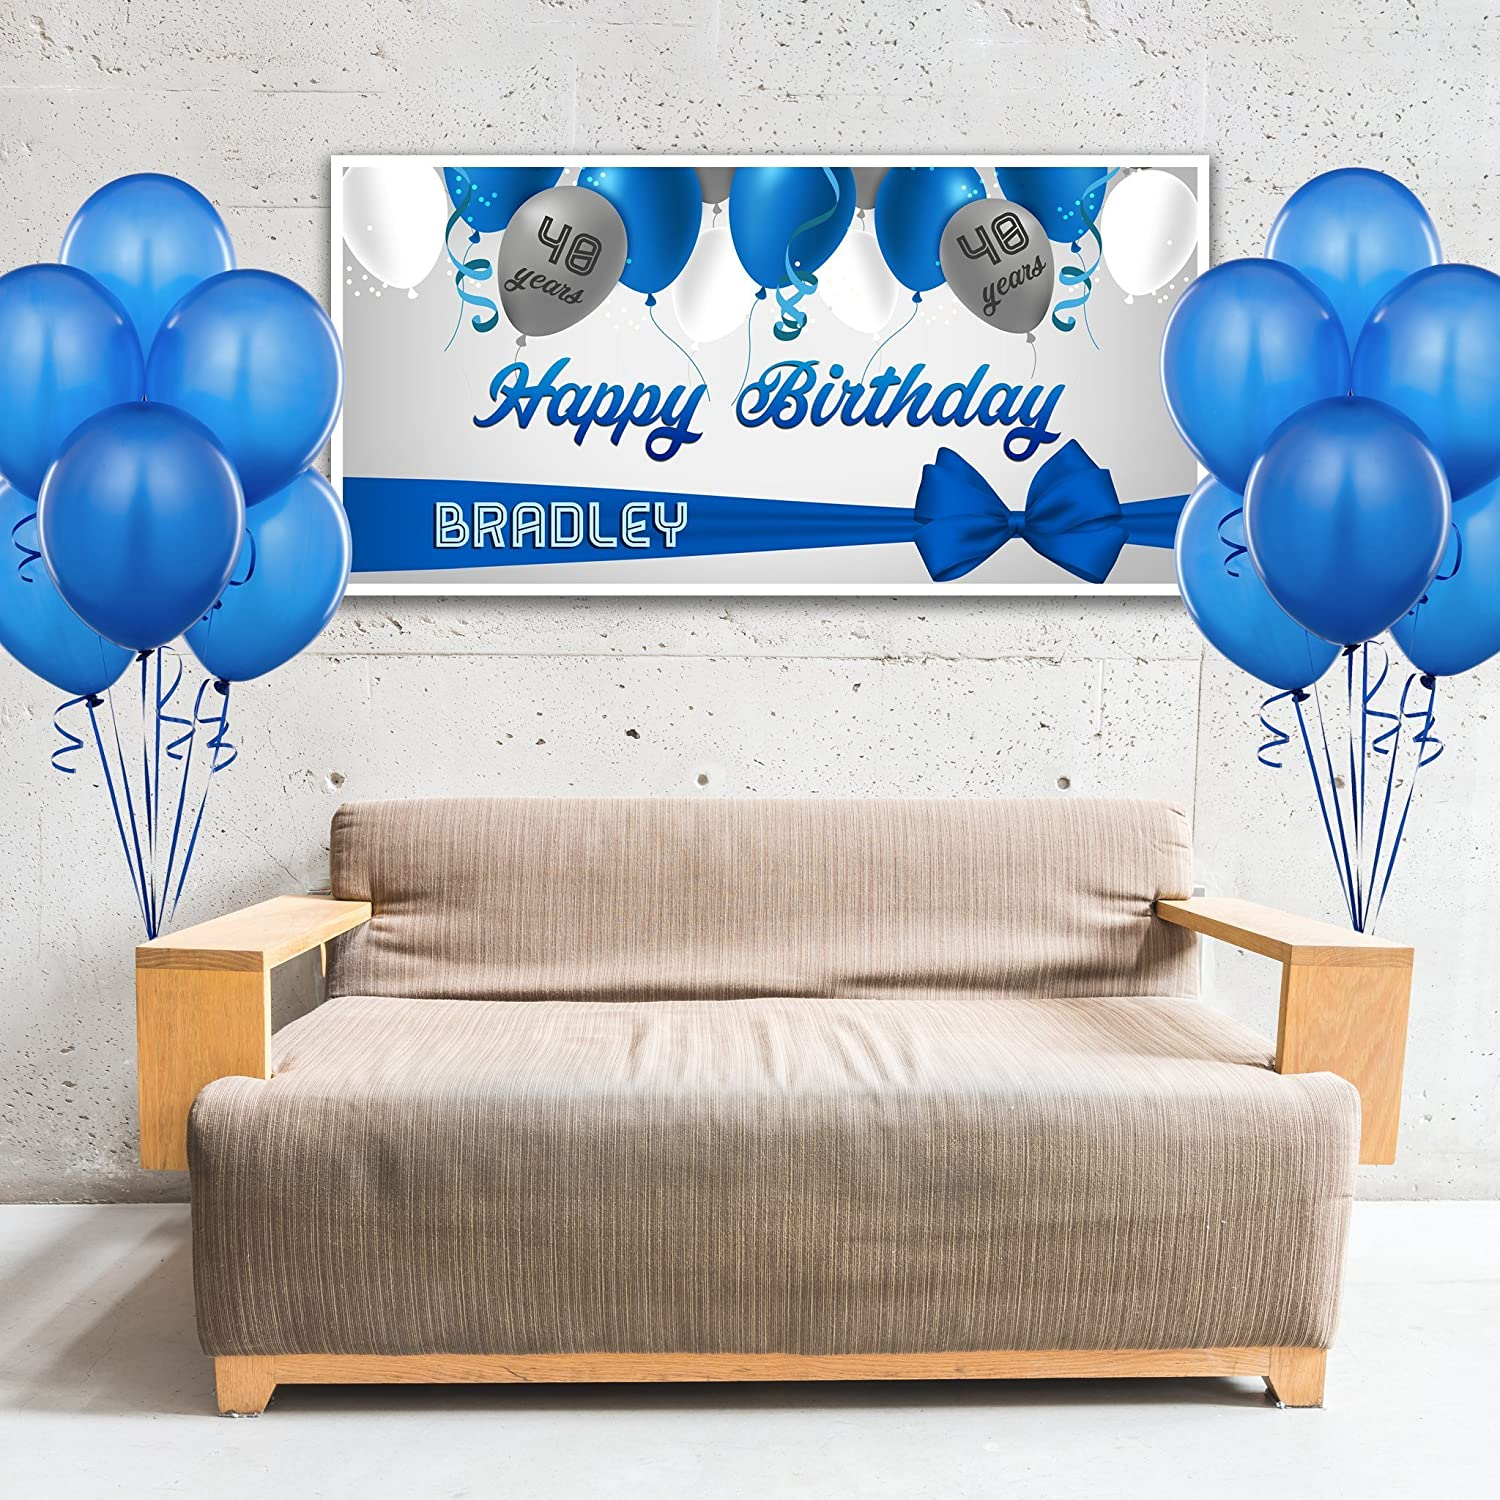 Balloons Birthday Banner Party Backdrop Decoration